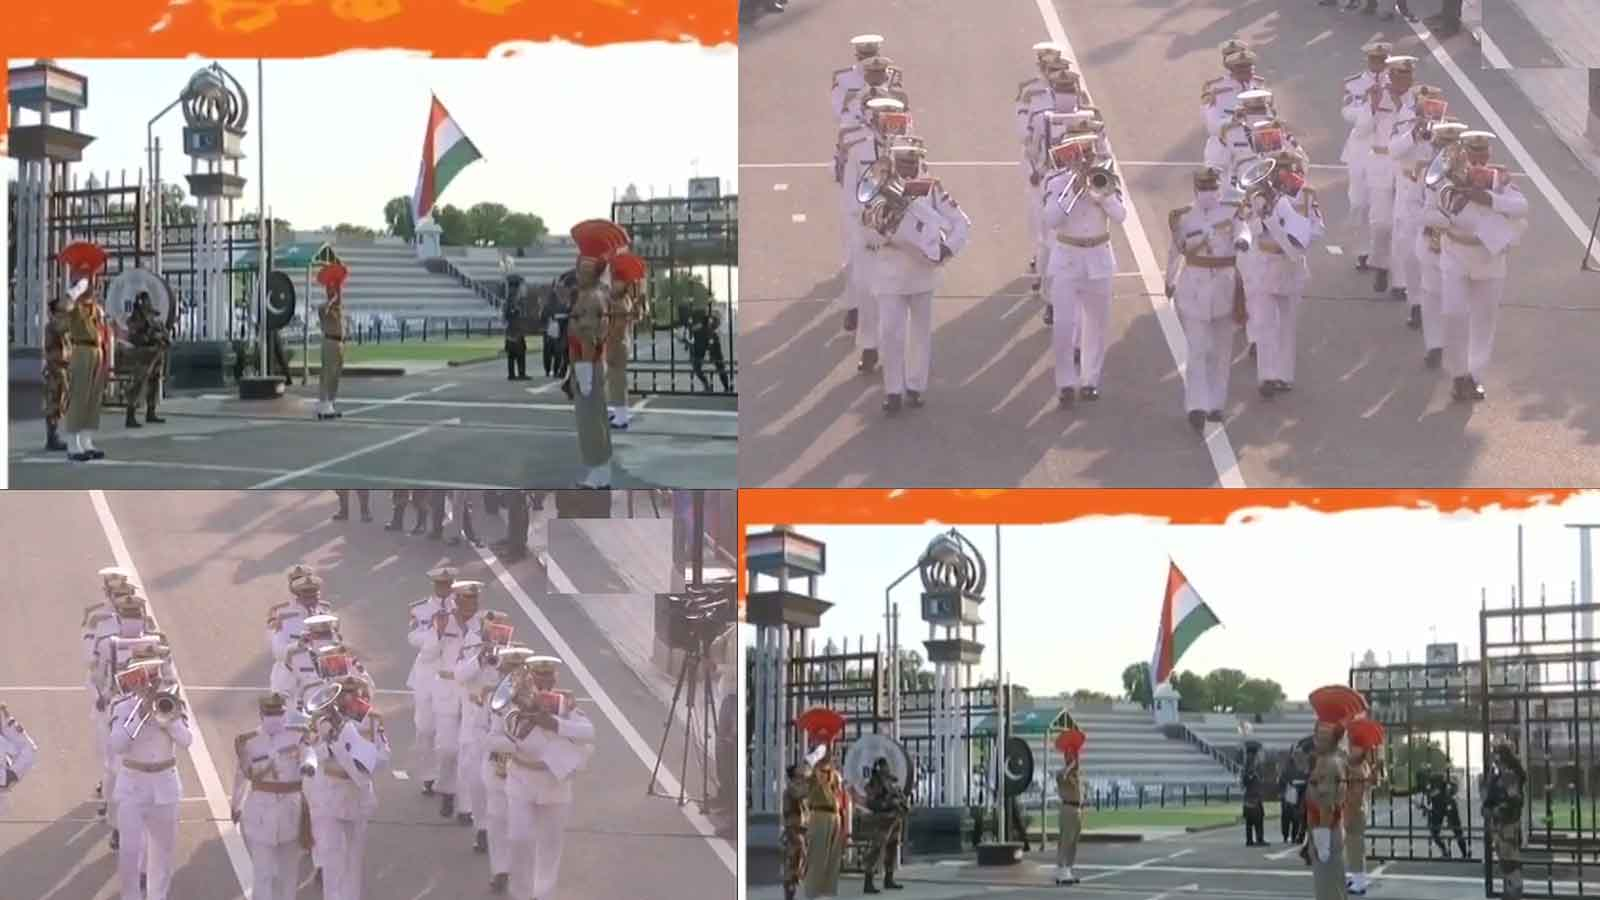 independence-day-2020-beating-retreat-ceremony-at-attari-wagah-border-as-a-part-of-celebrations